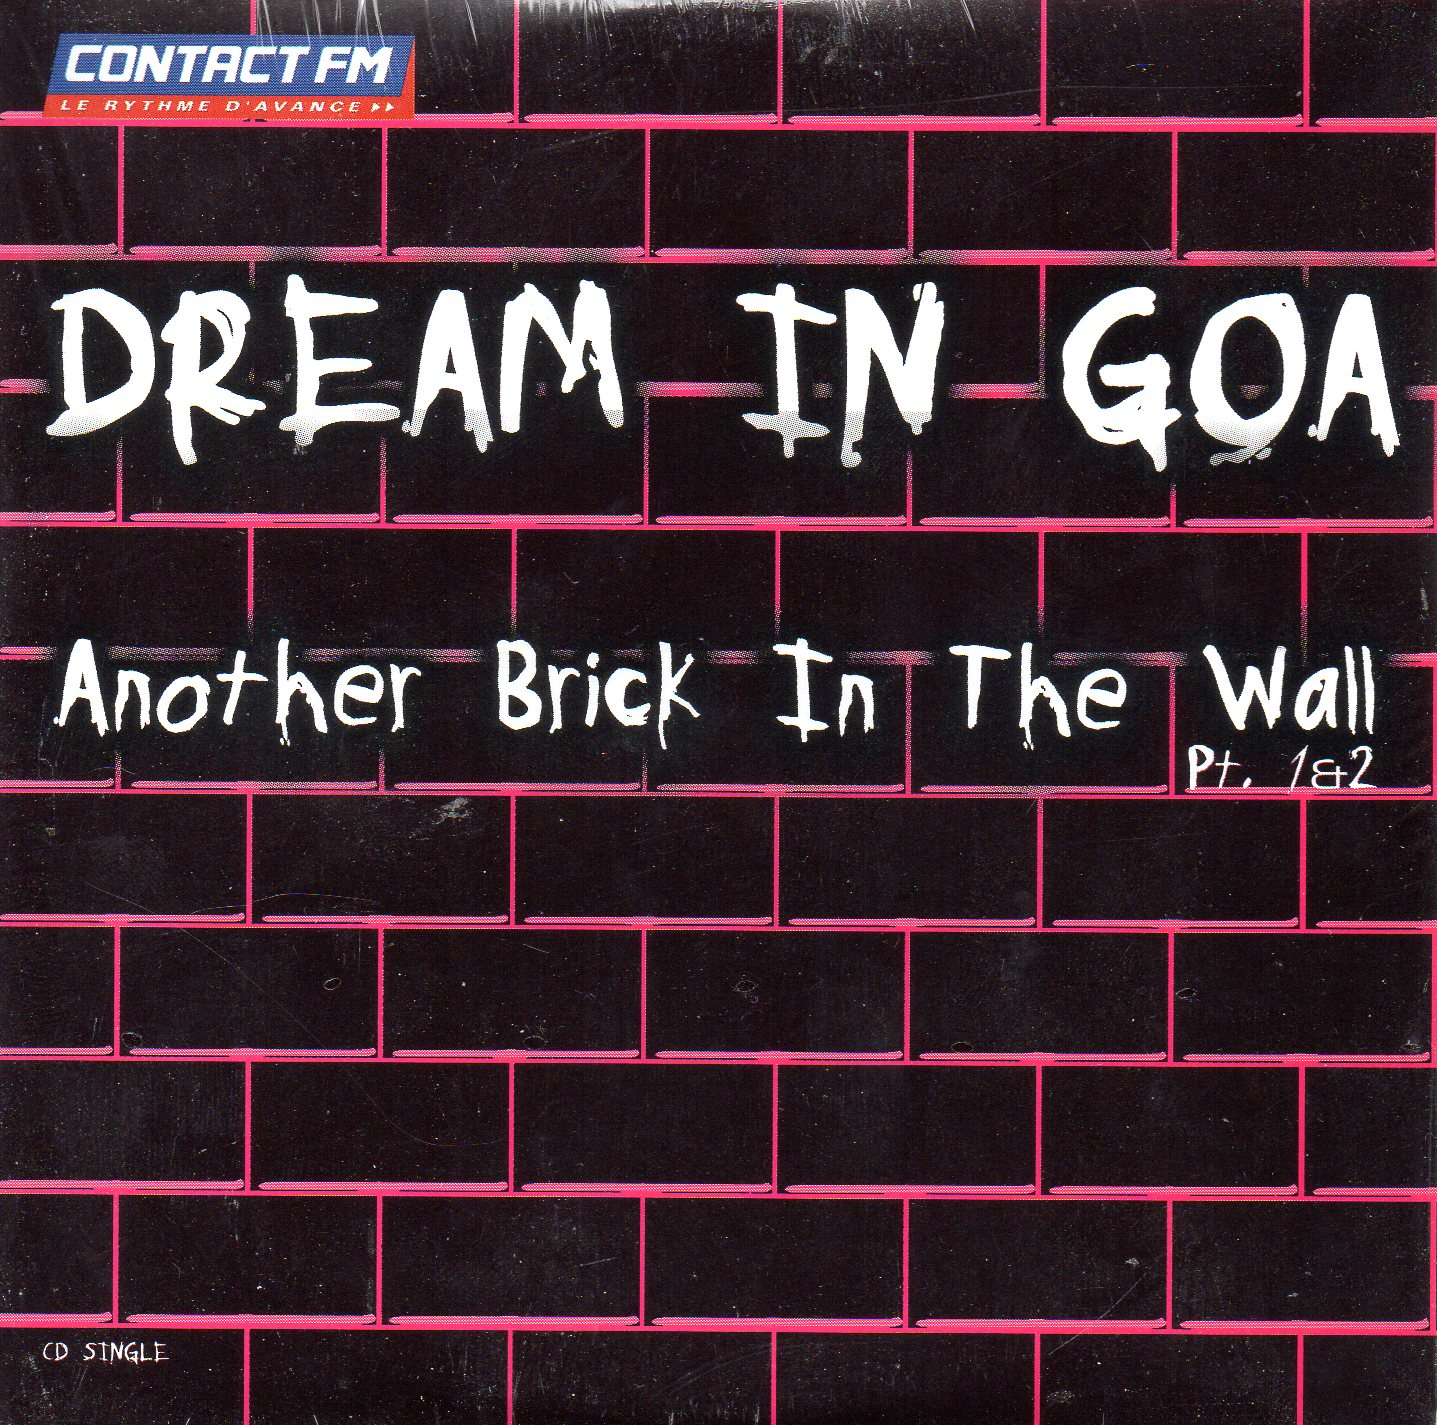 Another Brick In The Wall Cover Version Of Pink Floyd 4